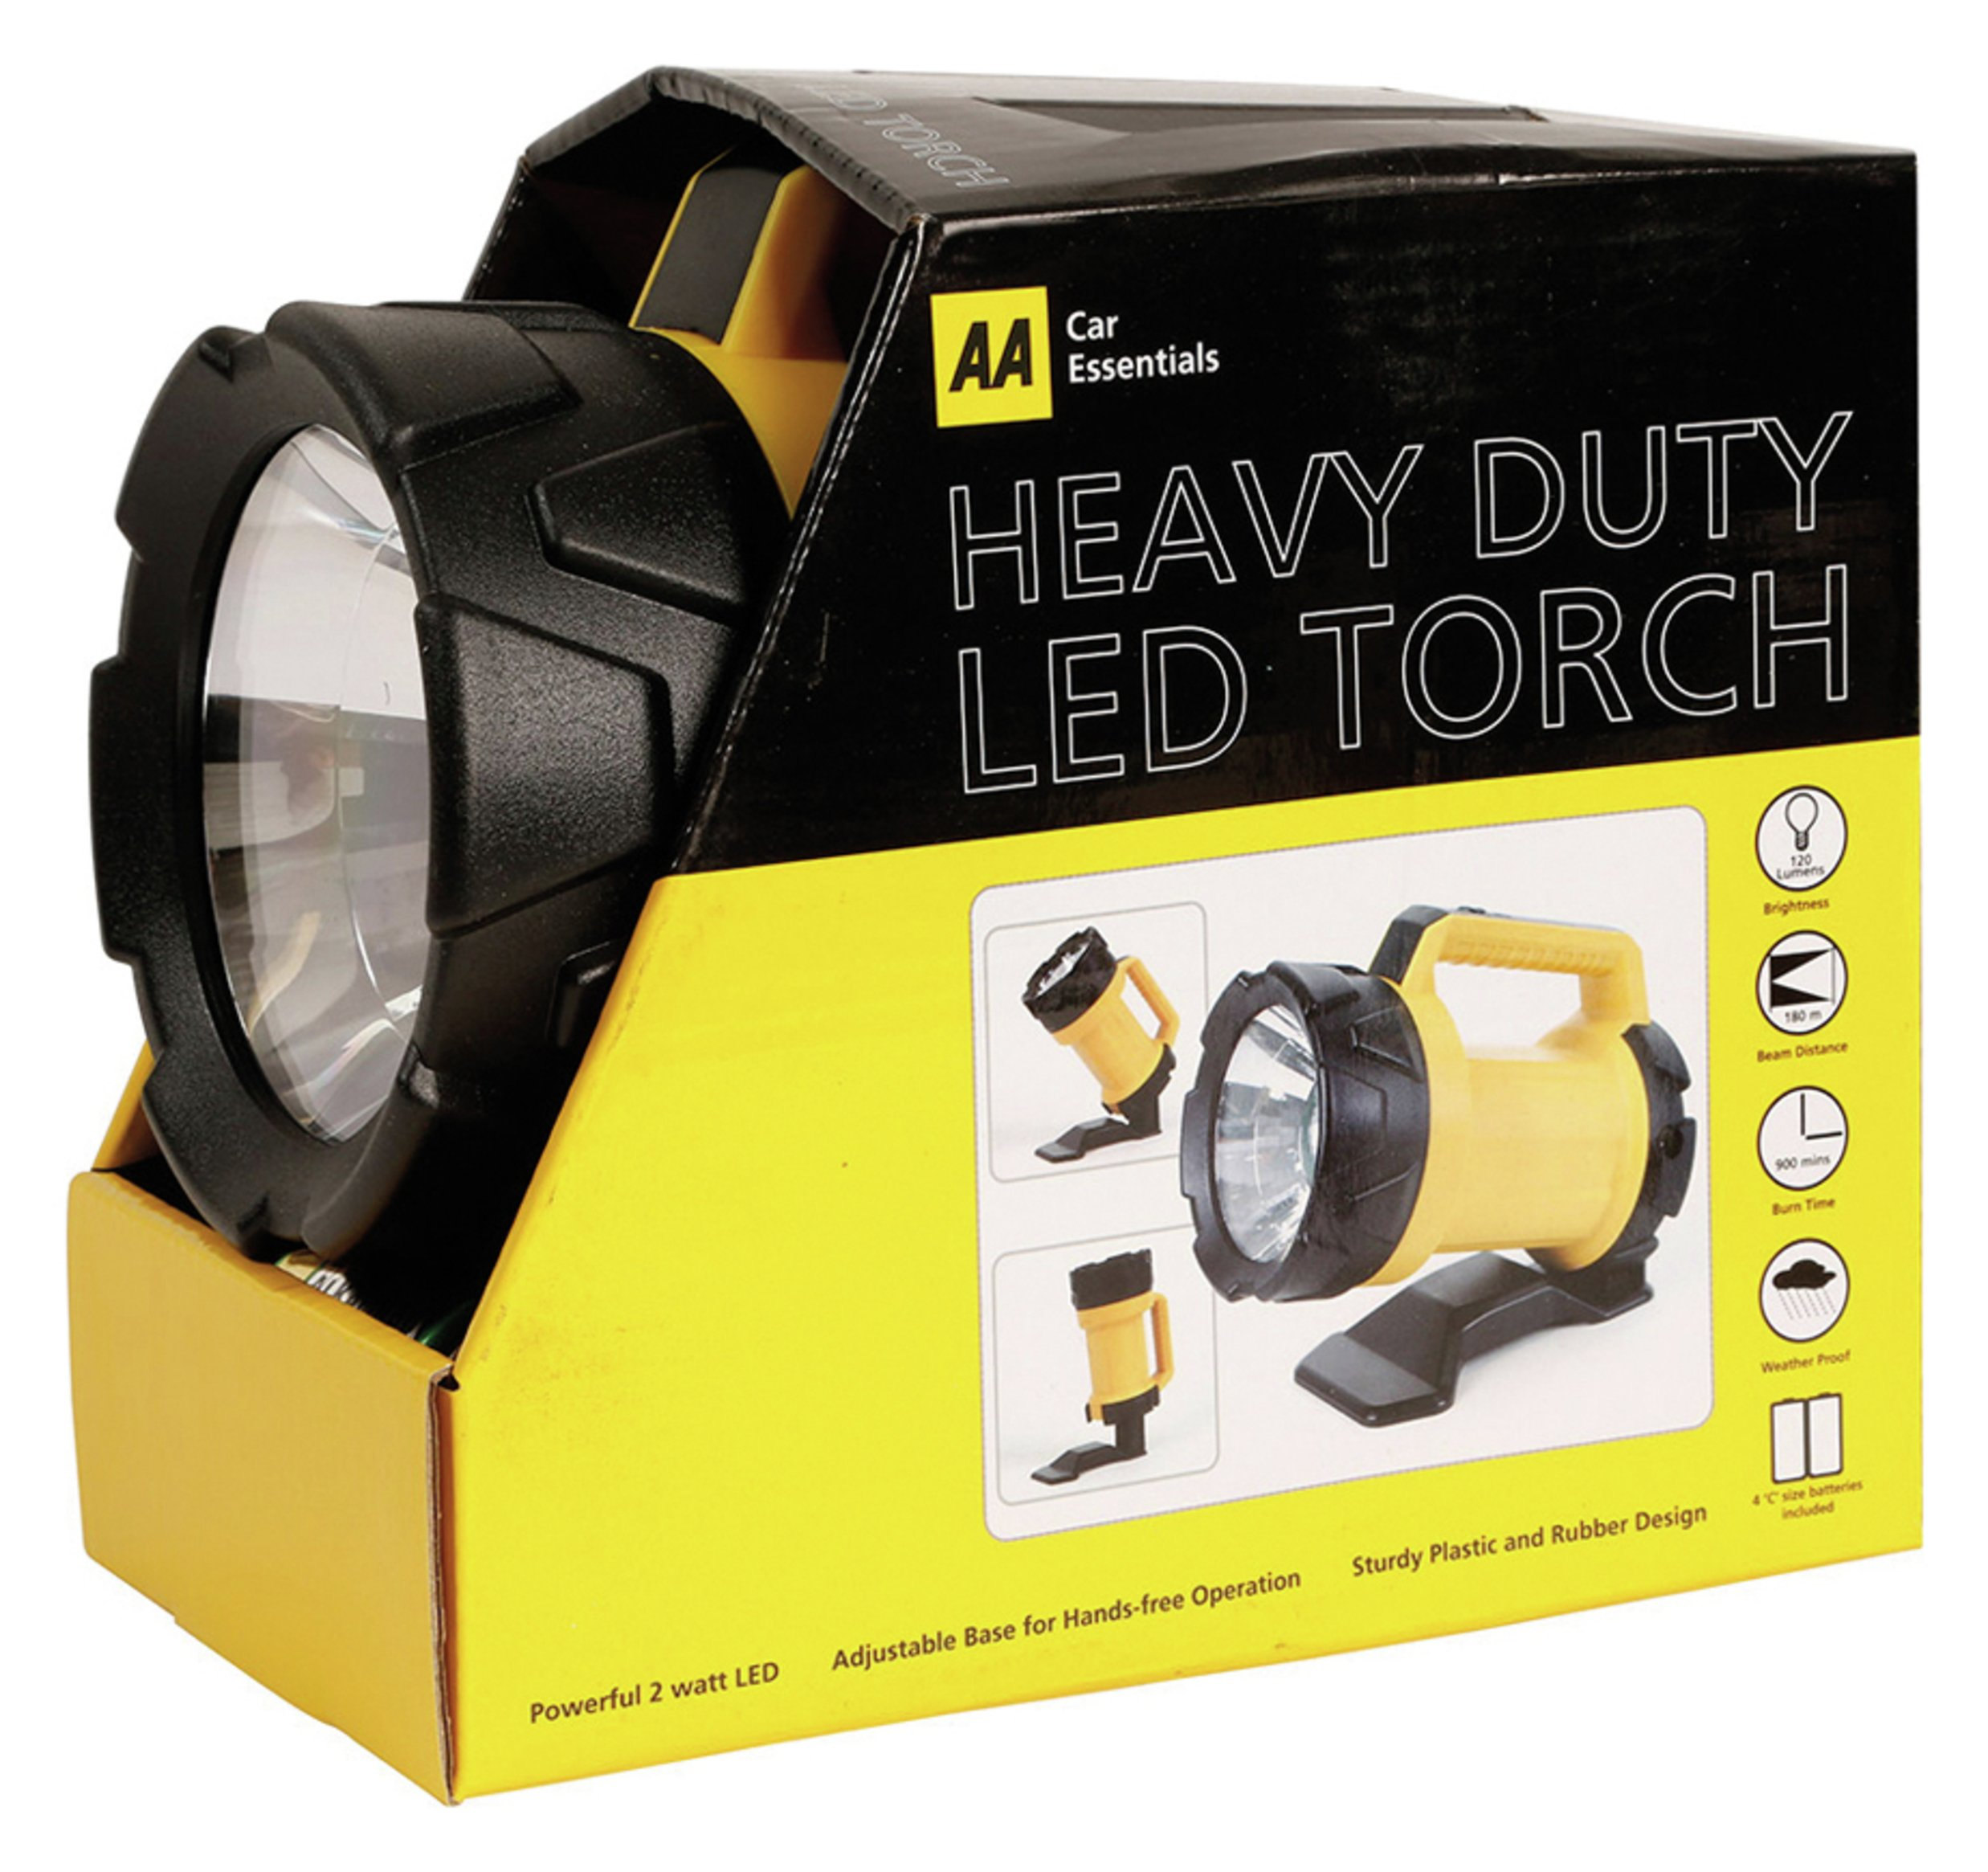 Image of AA Heavy Duty LED Torch